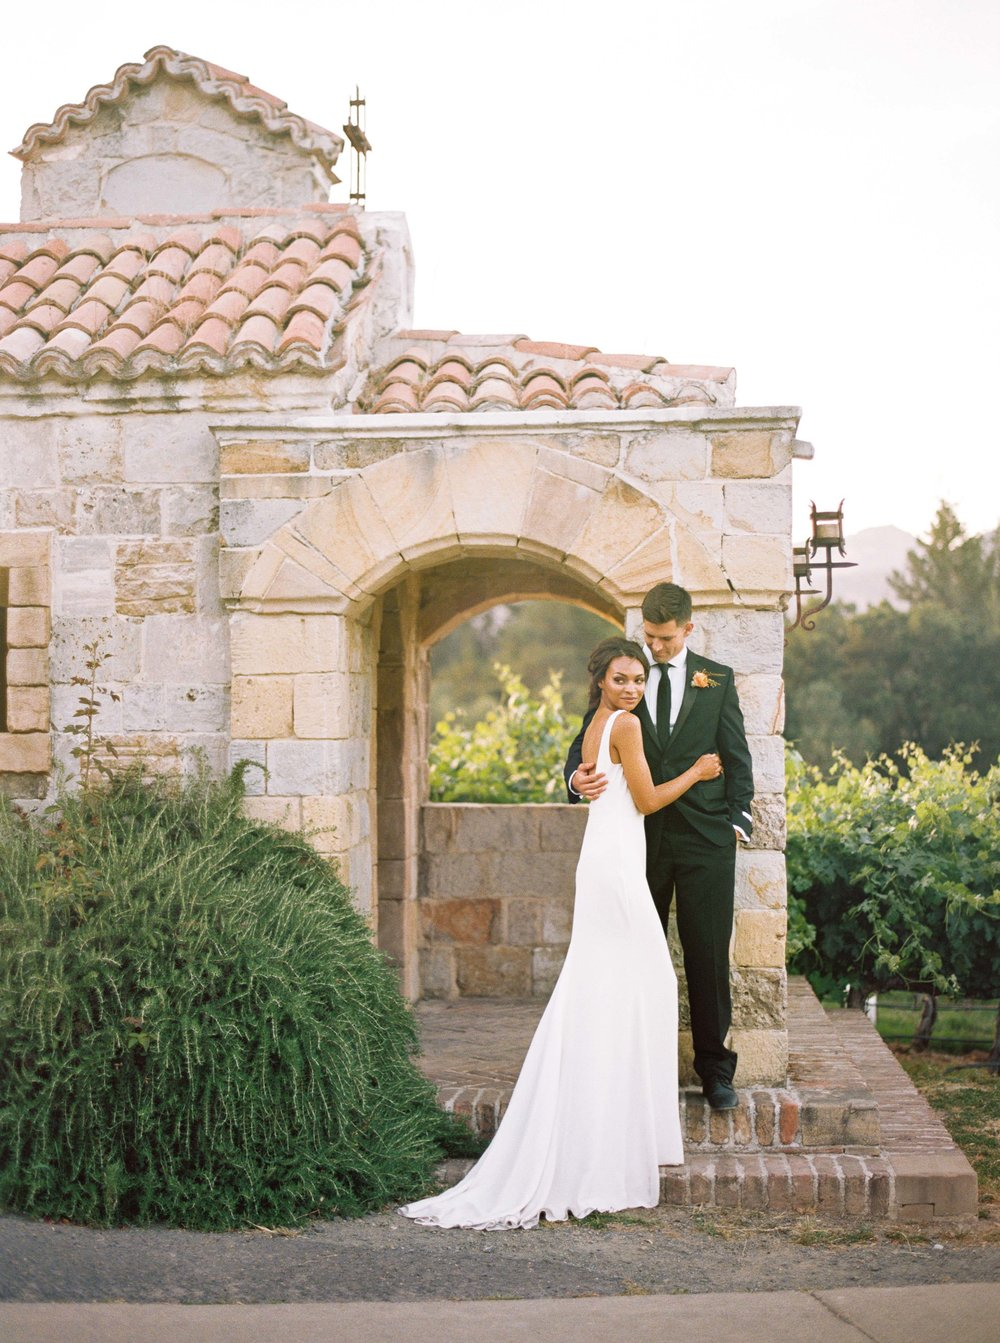 062napa_wedding_photographer_and_videographer_destination_and_elopement_photography.jpg